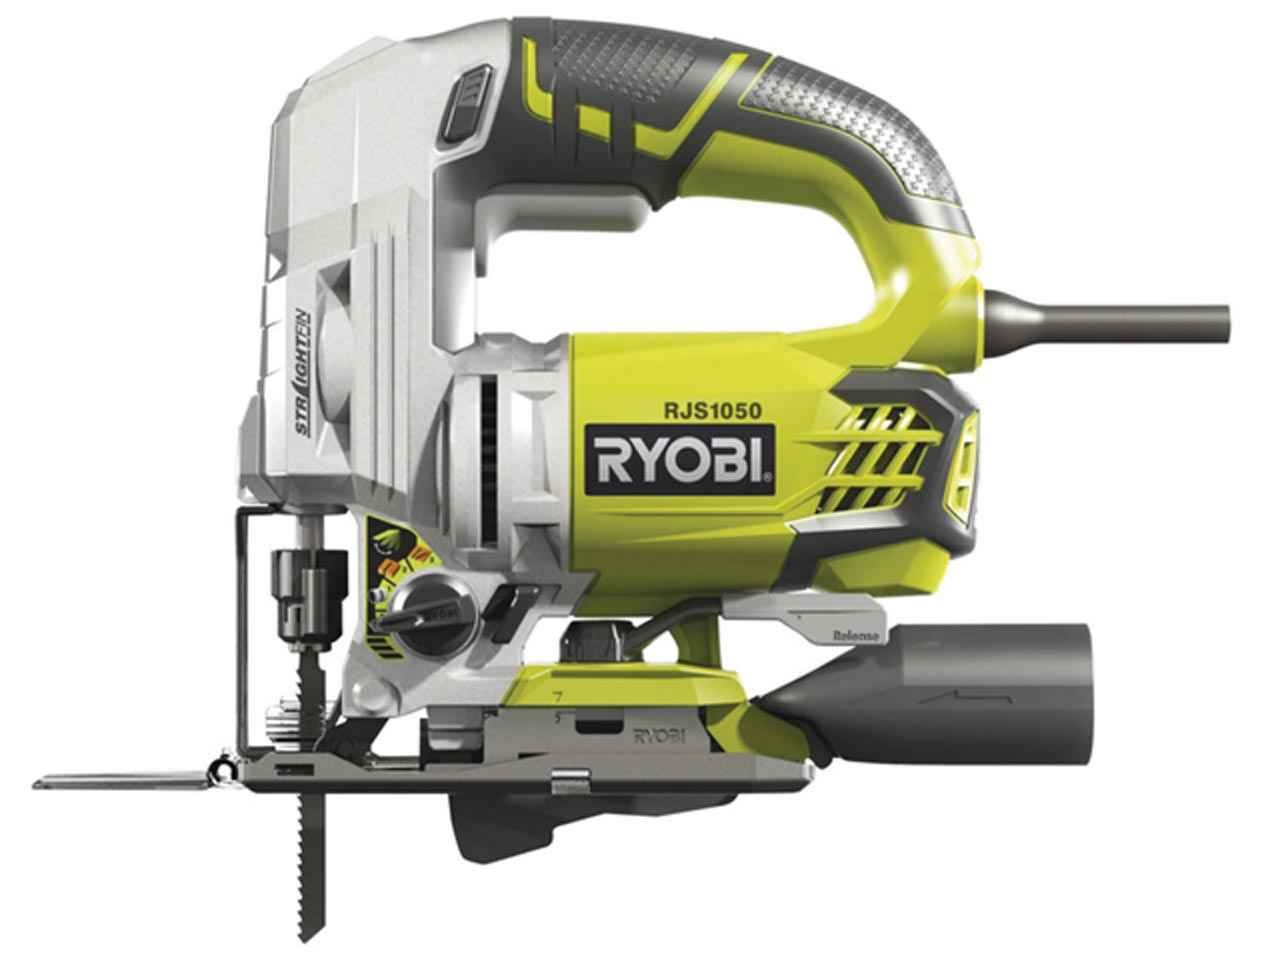 Ryobi rjs1050 k variable speed jigsaw 680 watt 240 volt ryobi authorised reseller keyboard keysfo Gallery